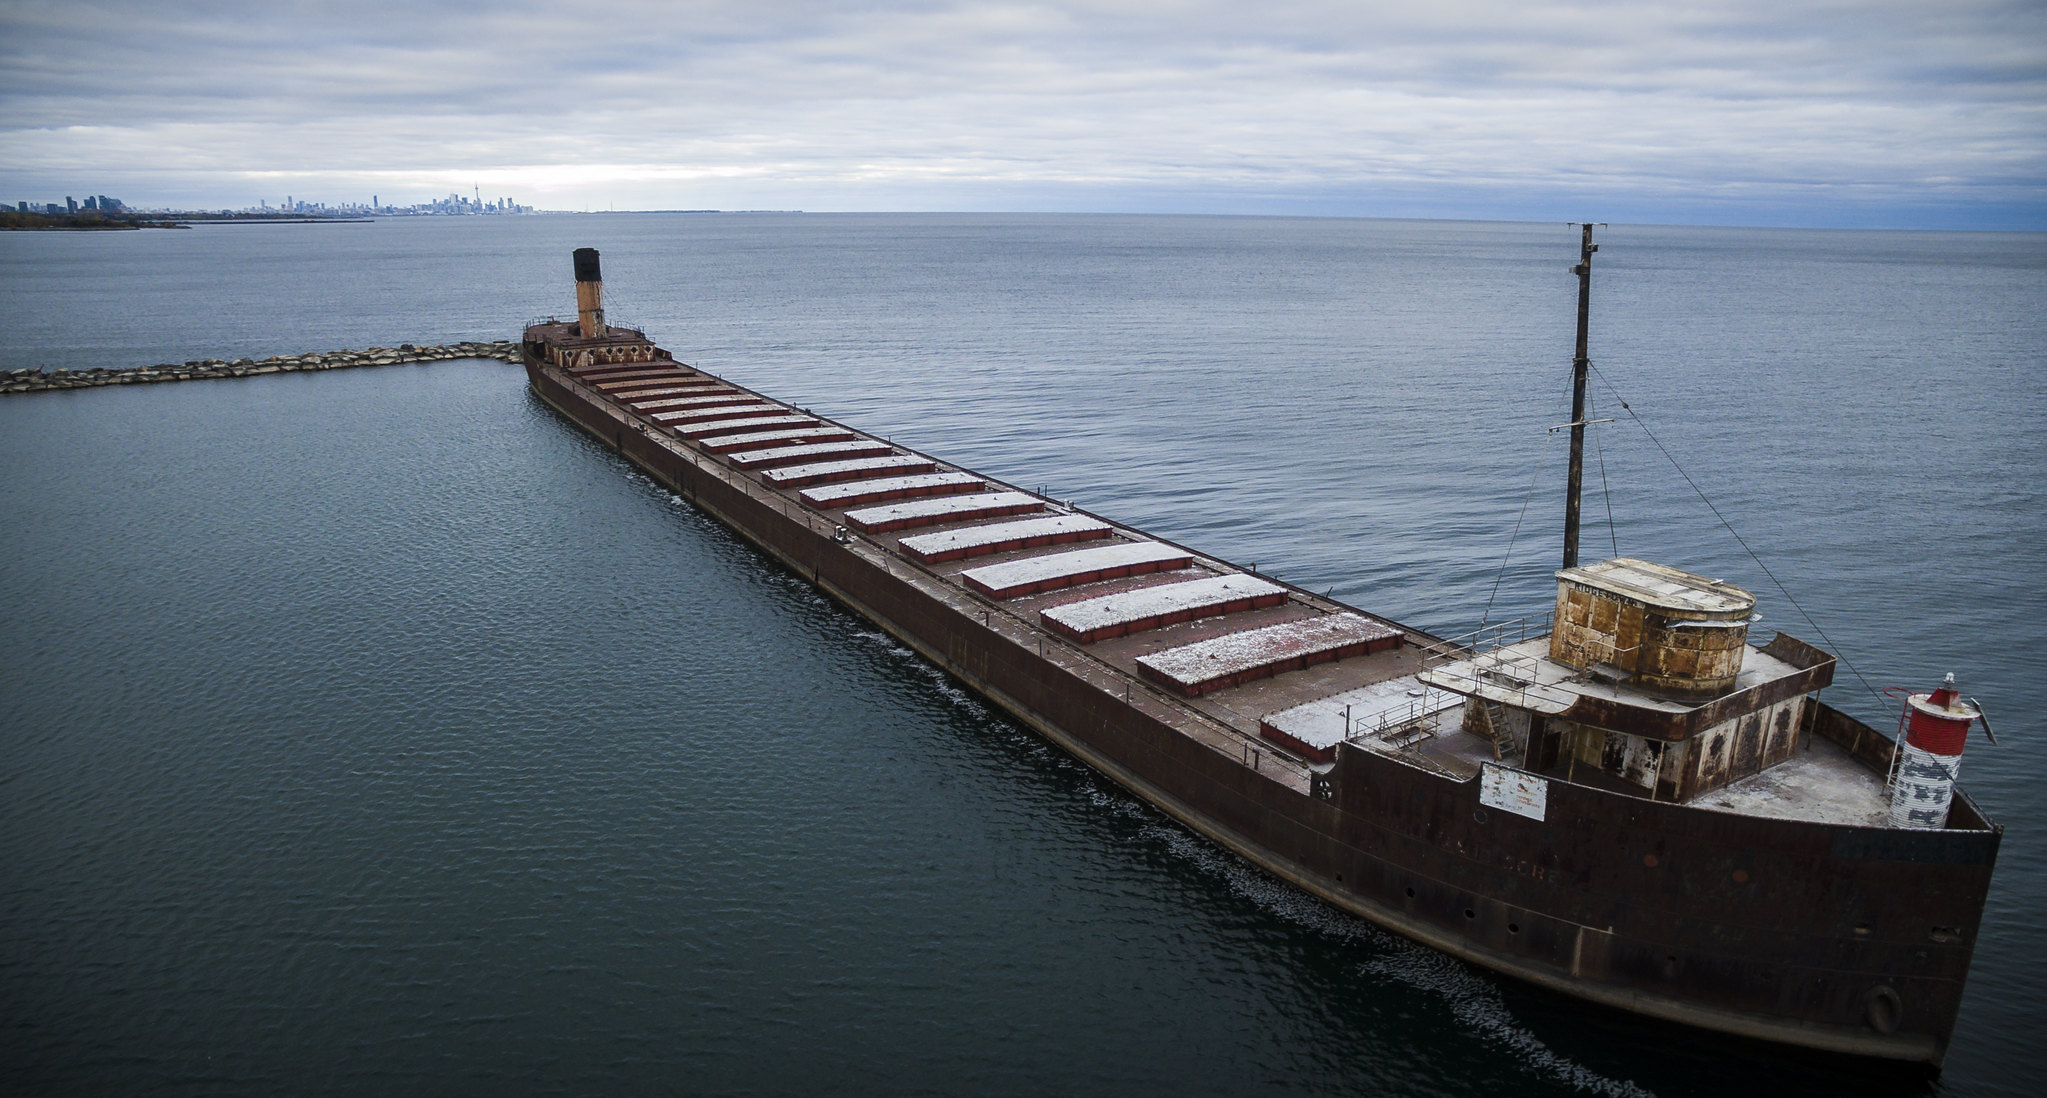 Abandoned tanker ship in a cloudy port.